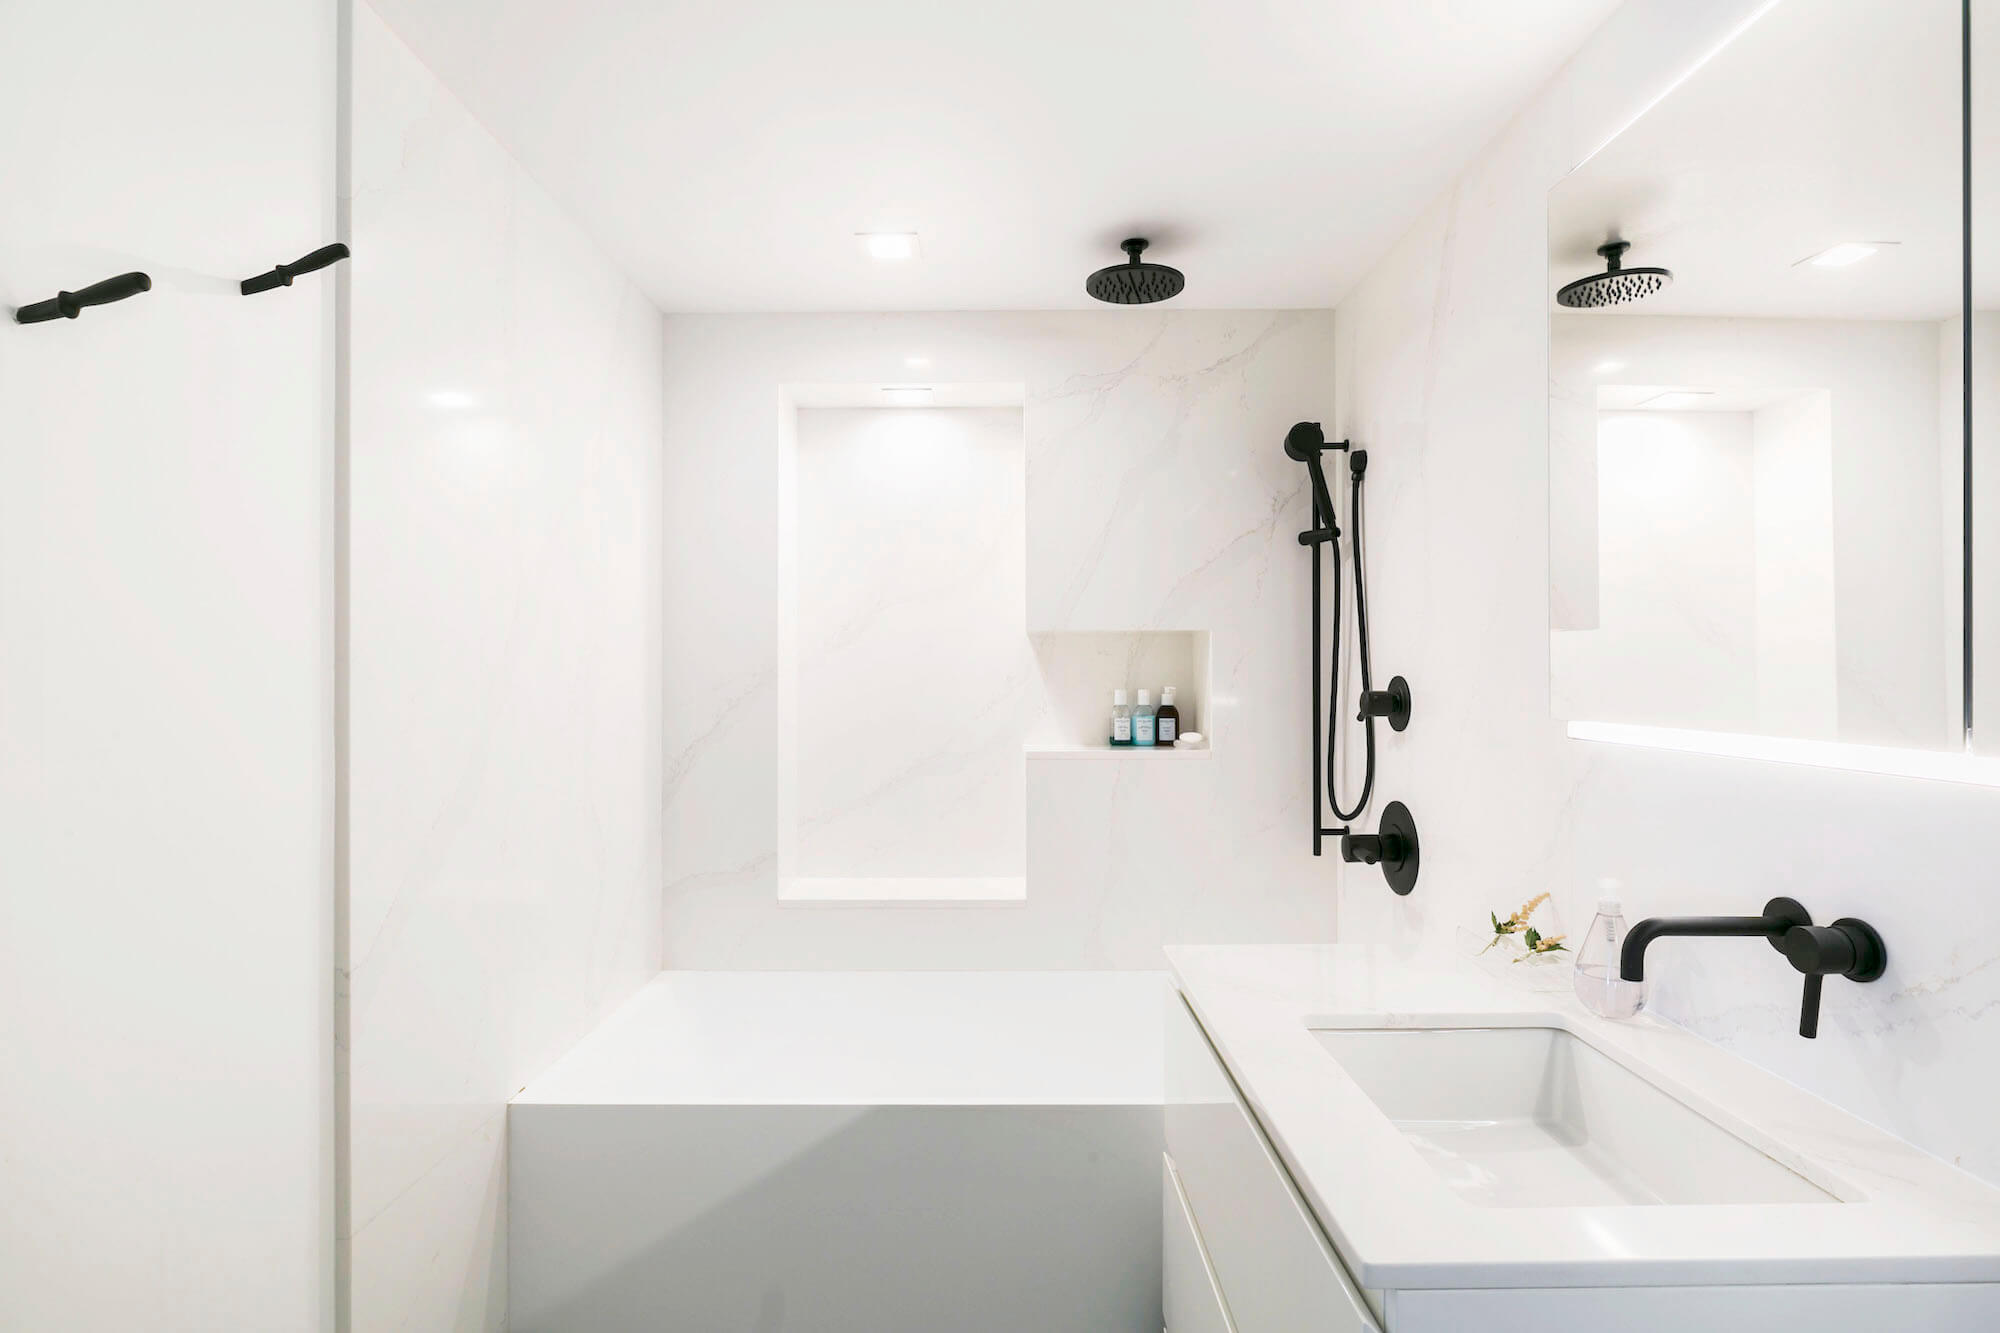 A modern loft bathroom with white marble and black fixtures